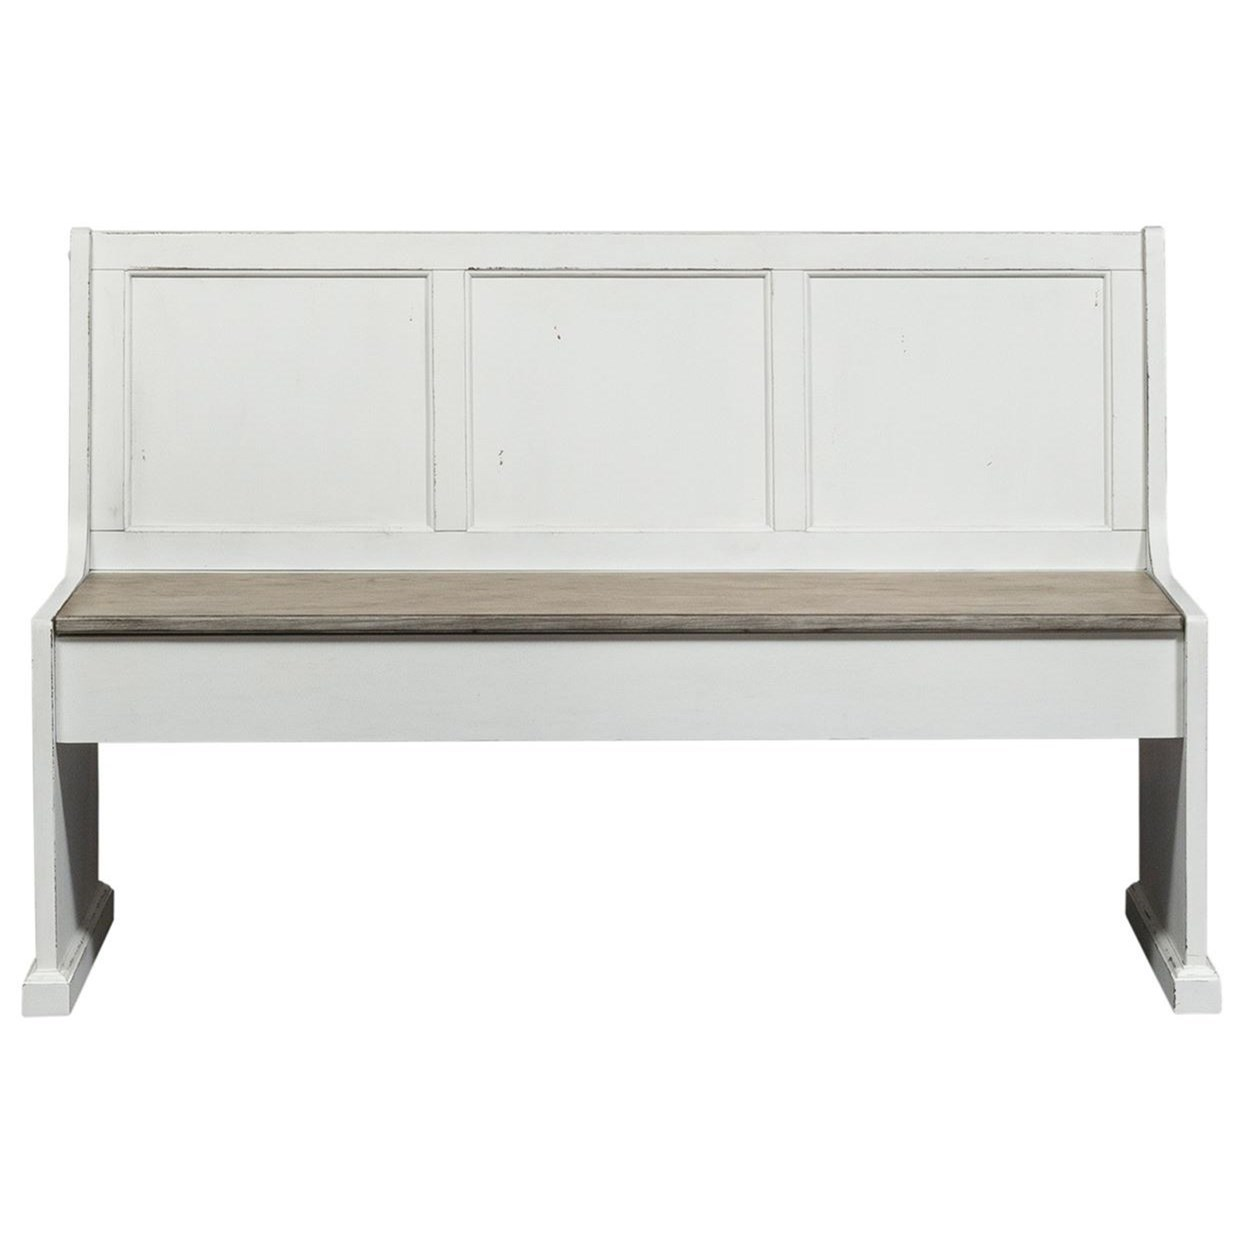 """Morgan 56"""" Nook Bench by Libby at Walker's Furniture"""